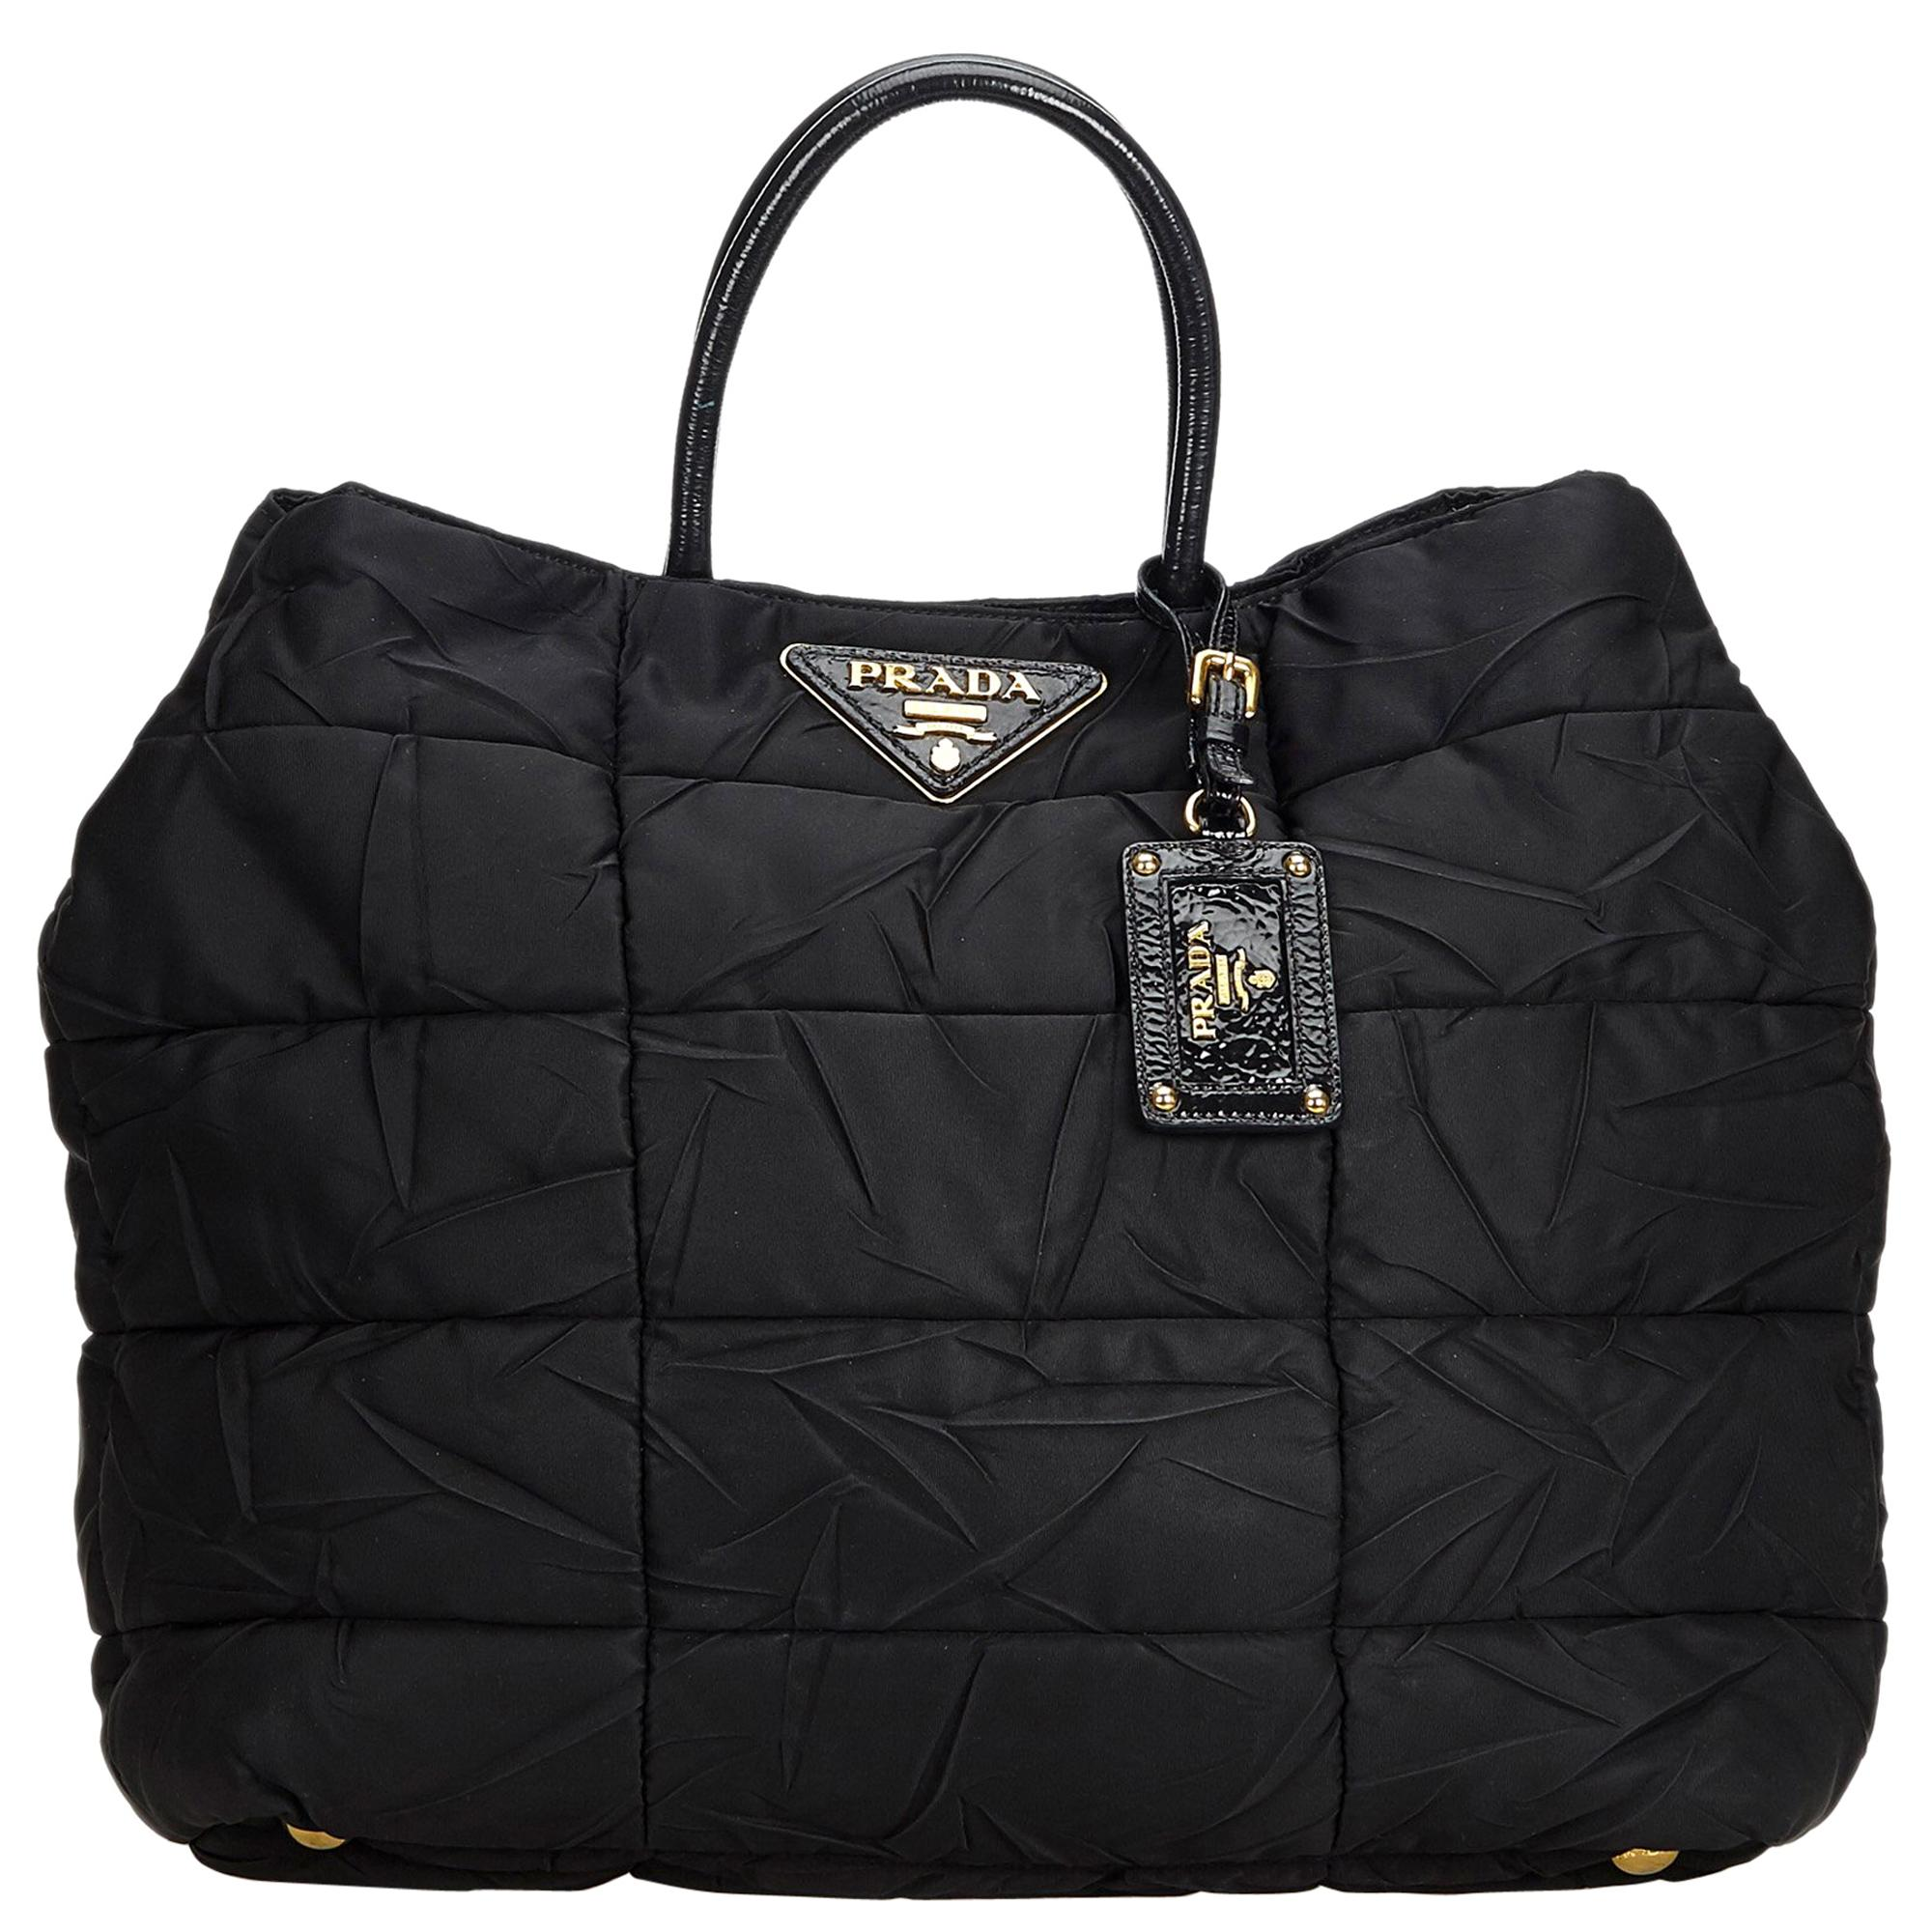 aa858baec98 Prada Black Nylon Fabric Quilted Tote Bag Italy For Sale at 1stdibs